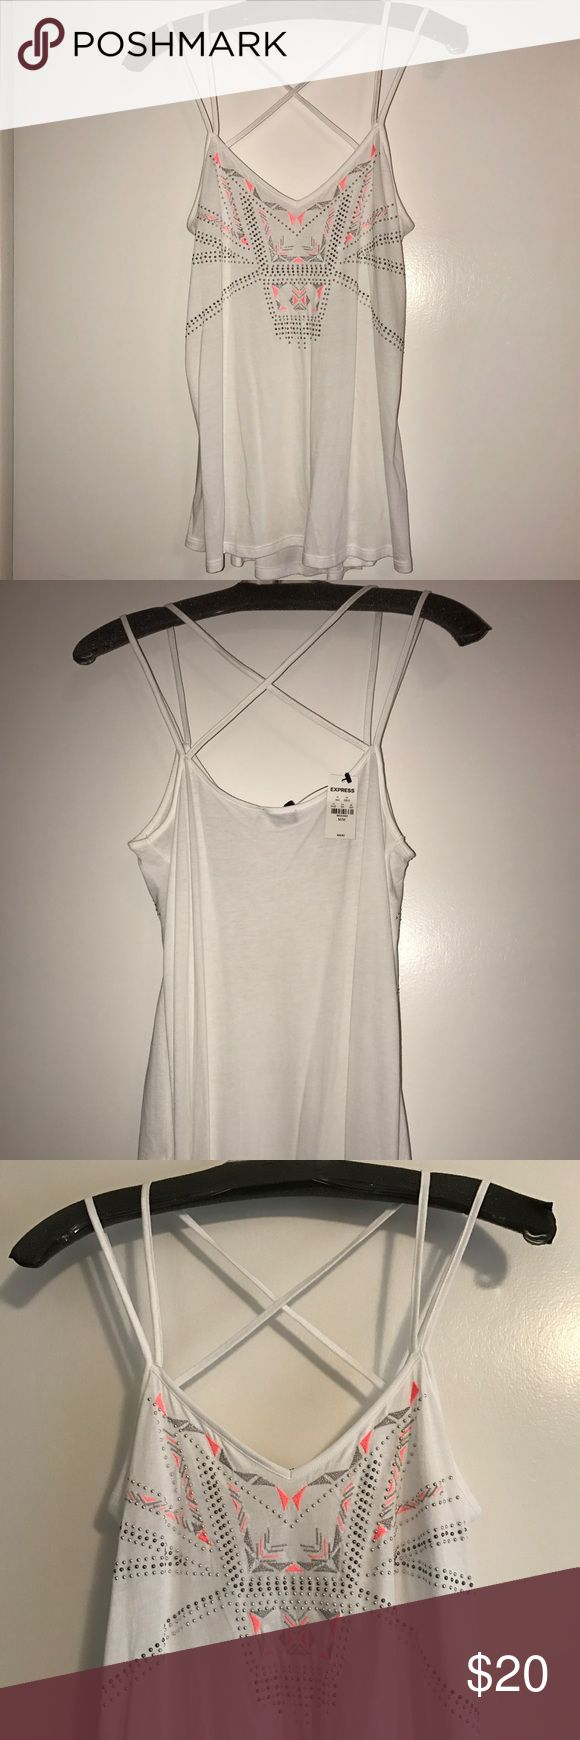 Express Women's Aztec studded tank NWT Medium NWT, never been worn Express Aztec print tank with strappy back. White with pink and silver accents as well as silver studs. Flowy tank with criss crossed straps on the back. Express Tops Tank Tops